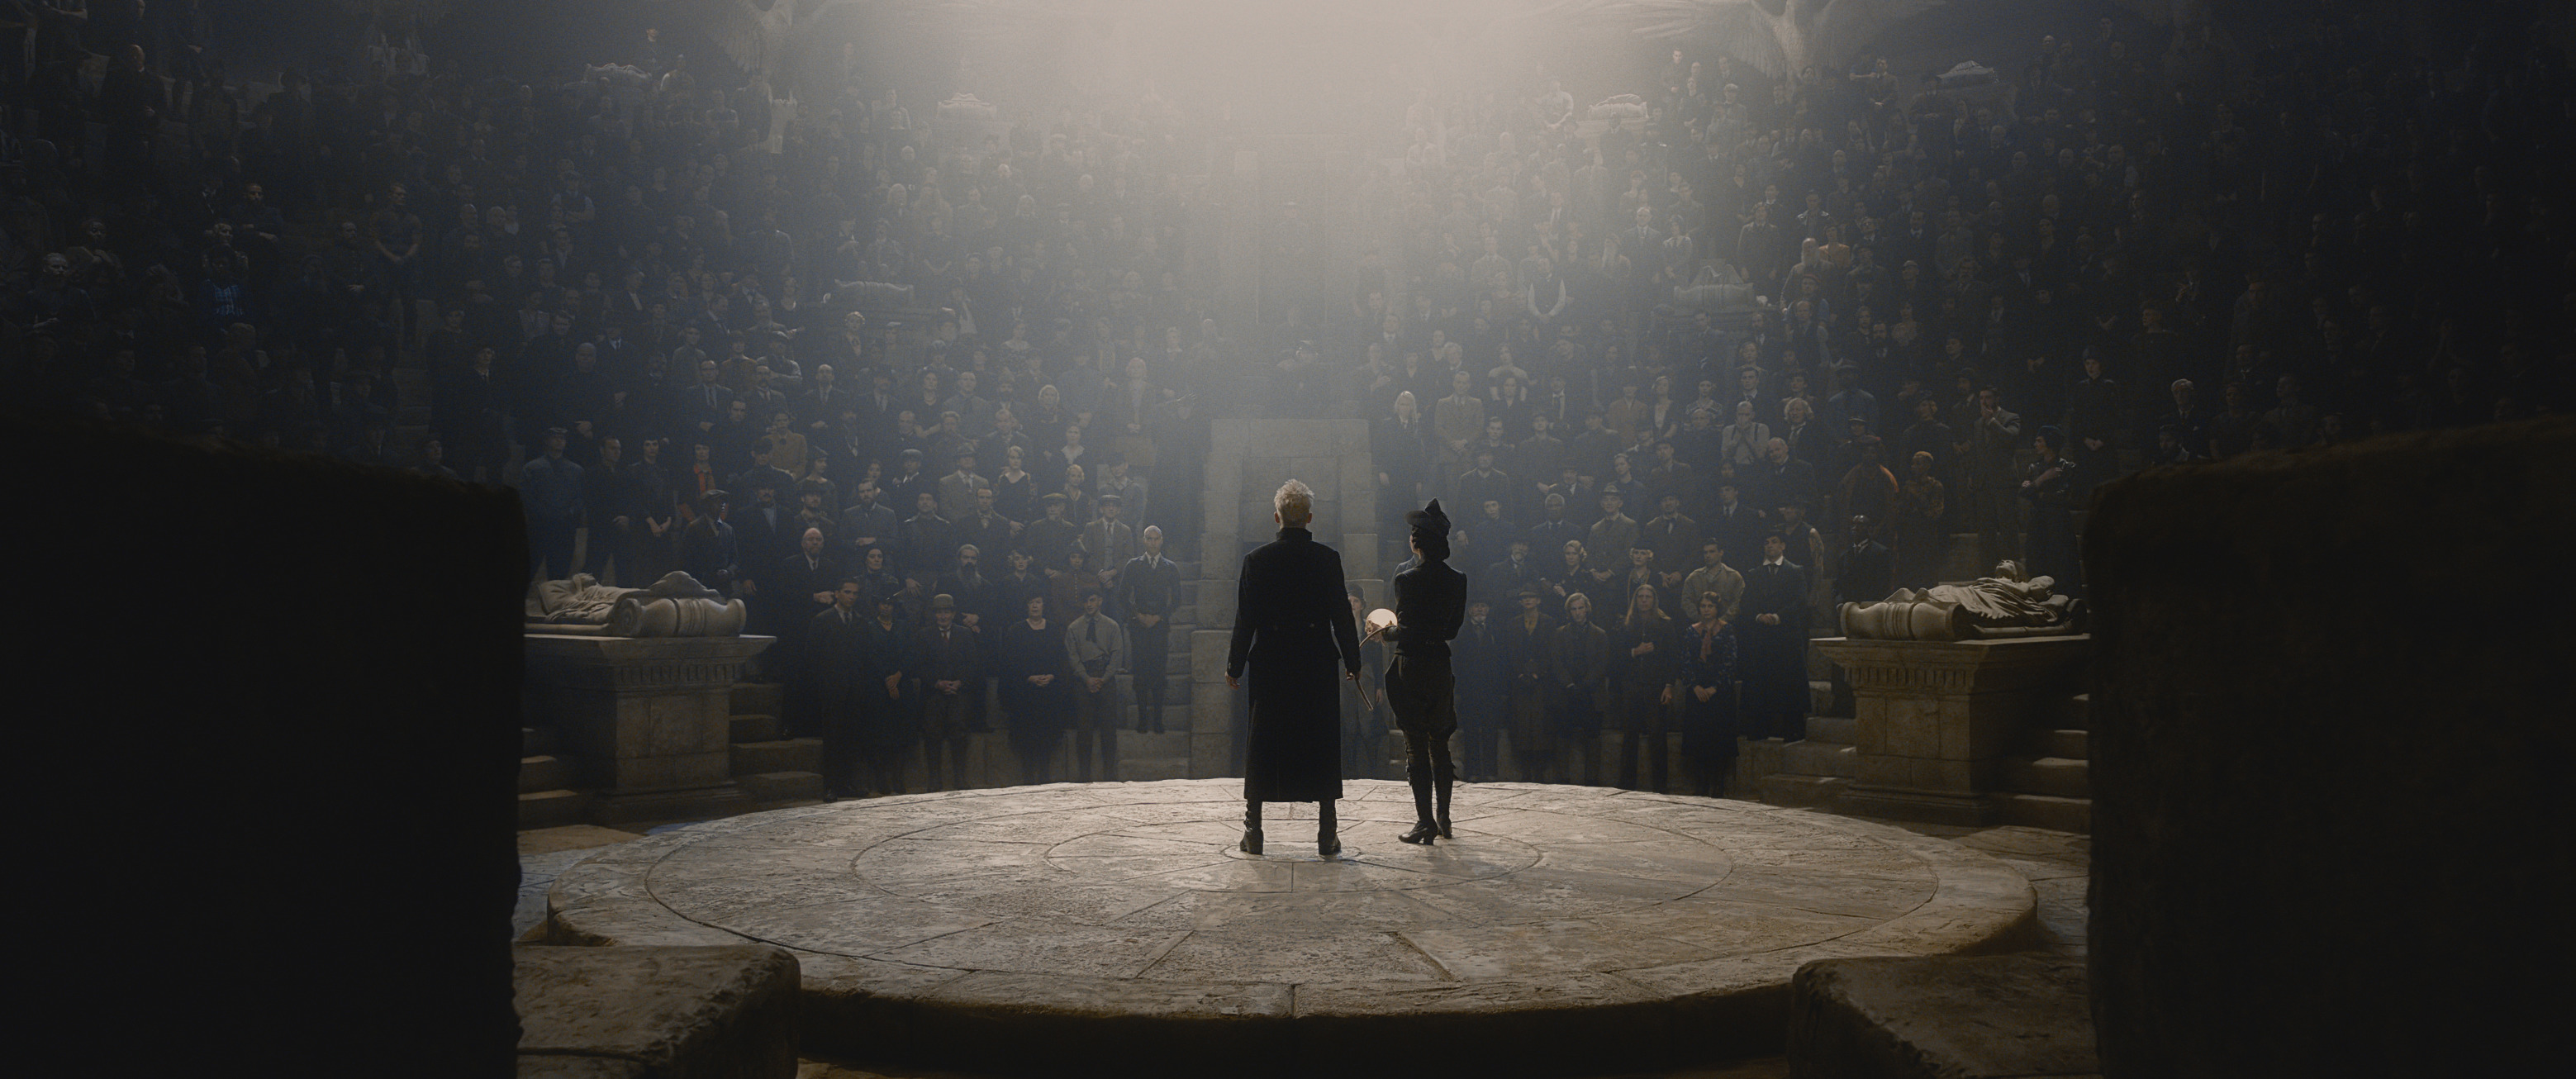 Grindelwald addresses his followers in The Crimes of Grindelwald